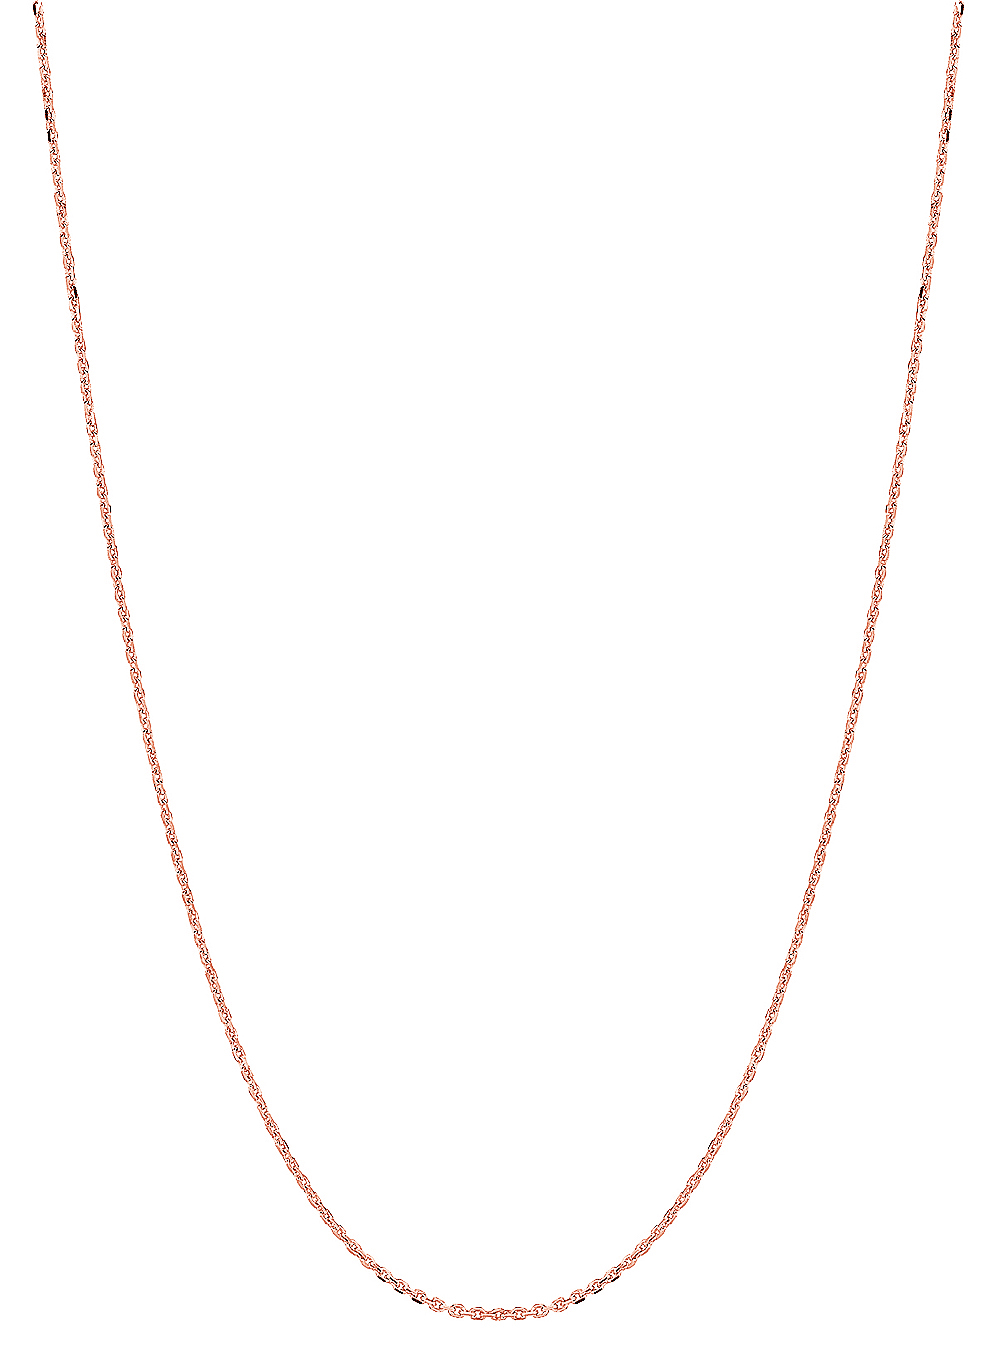 14k Solid Rose Pink Gold Diamond-Cut Cable Link Chain Necklace 1.1 Mm 20 Inches by JewelStop